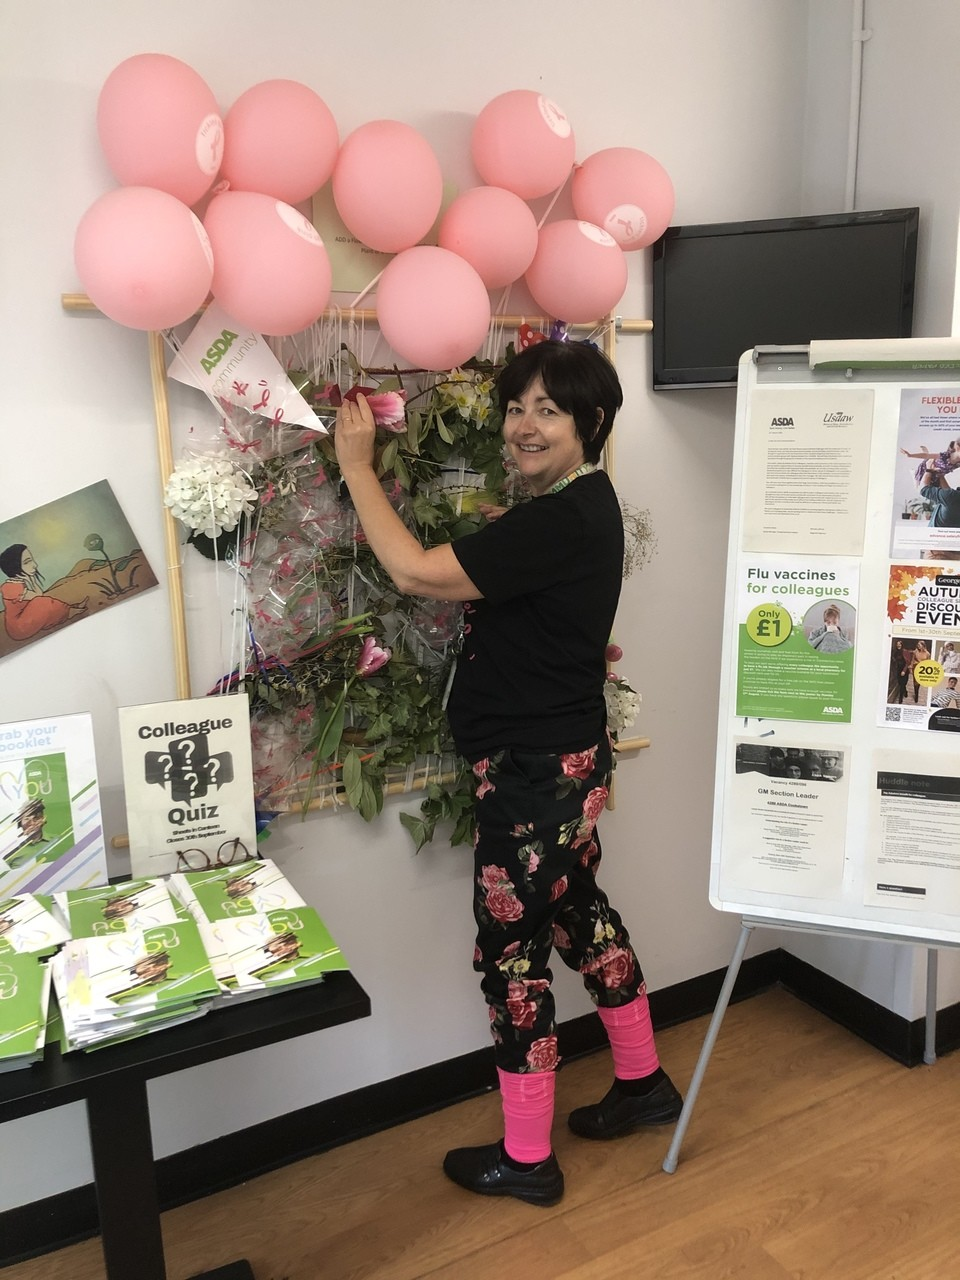 Tickled Pink Preparations  | Asda Cookstown